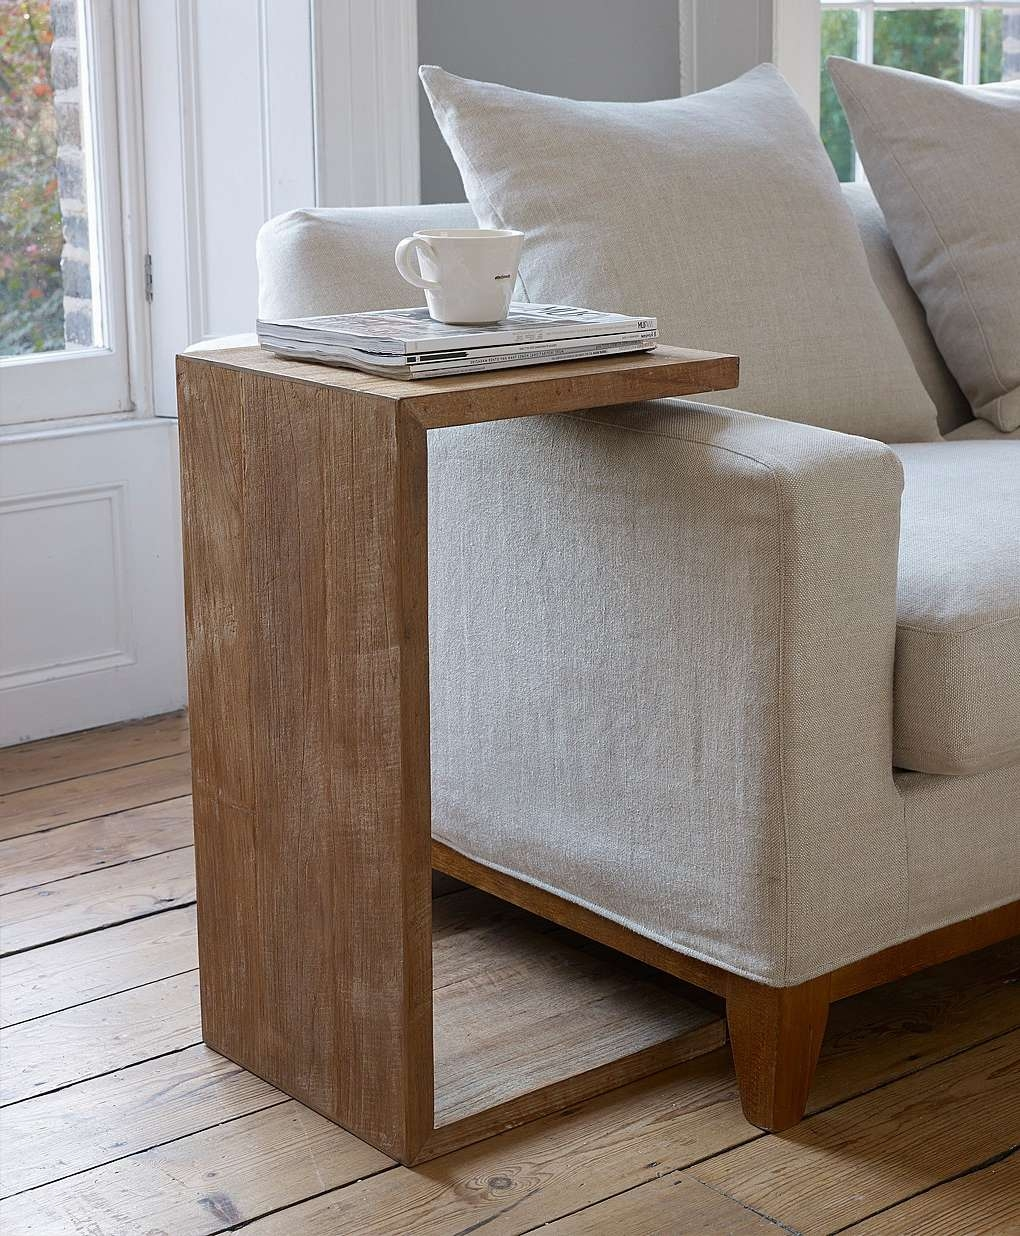 Sofa Table: Fabulous Sofa Side Table Design Cheap Coffee Tables For 2018 C Coffee Tables (View 16 of 20)